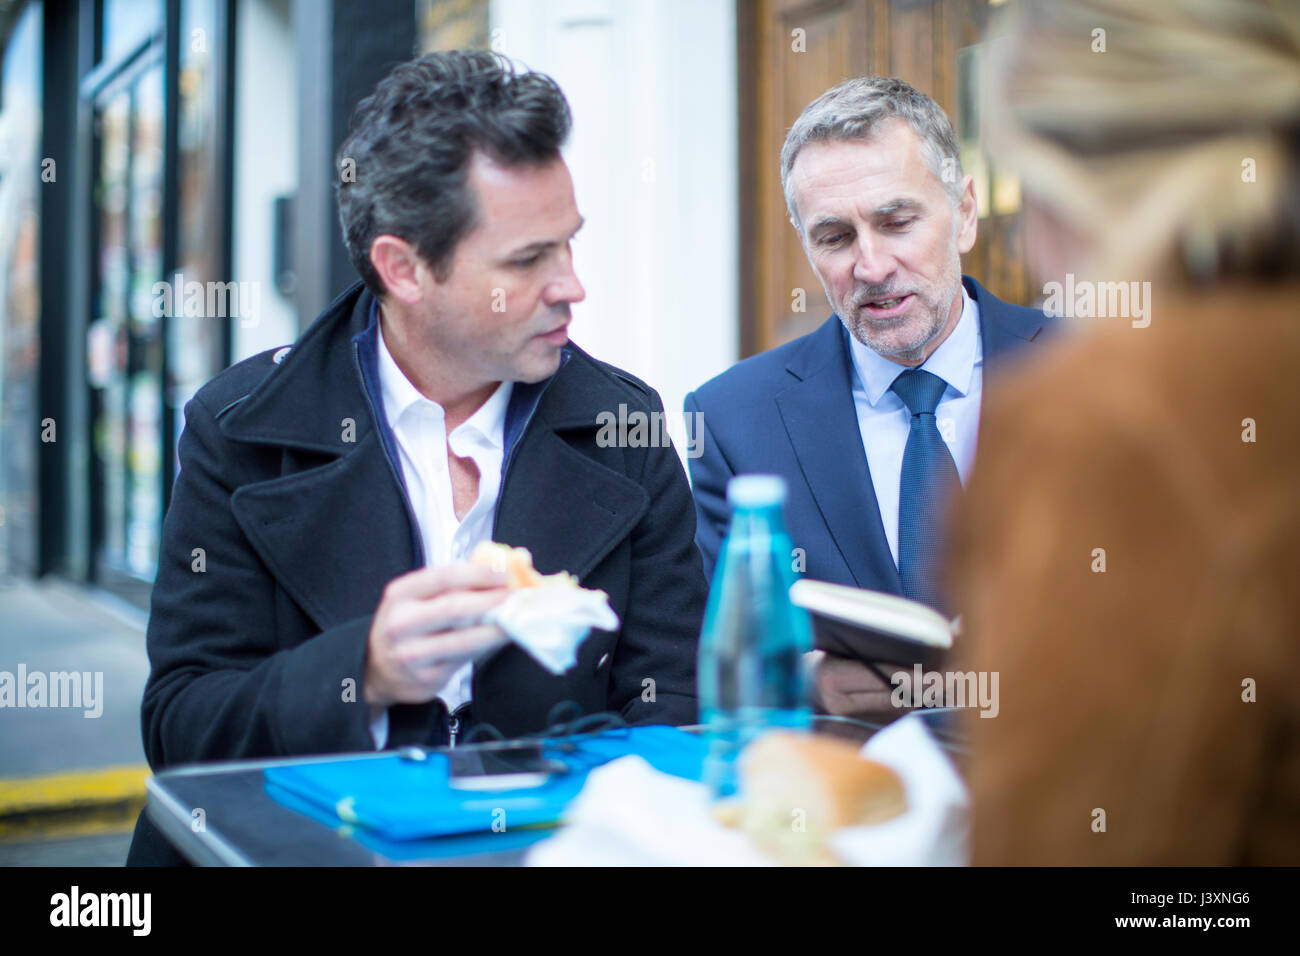 Businesspeople at pavement cafe having working lunch - Stock Image